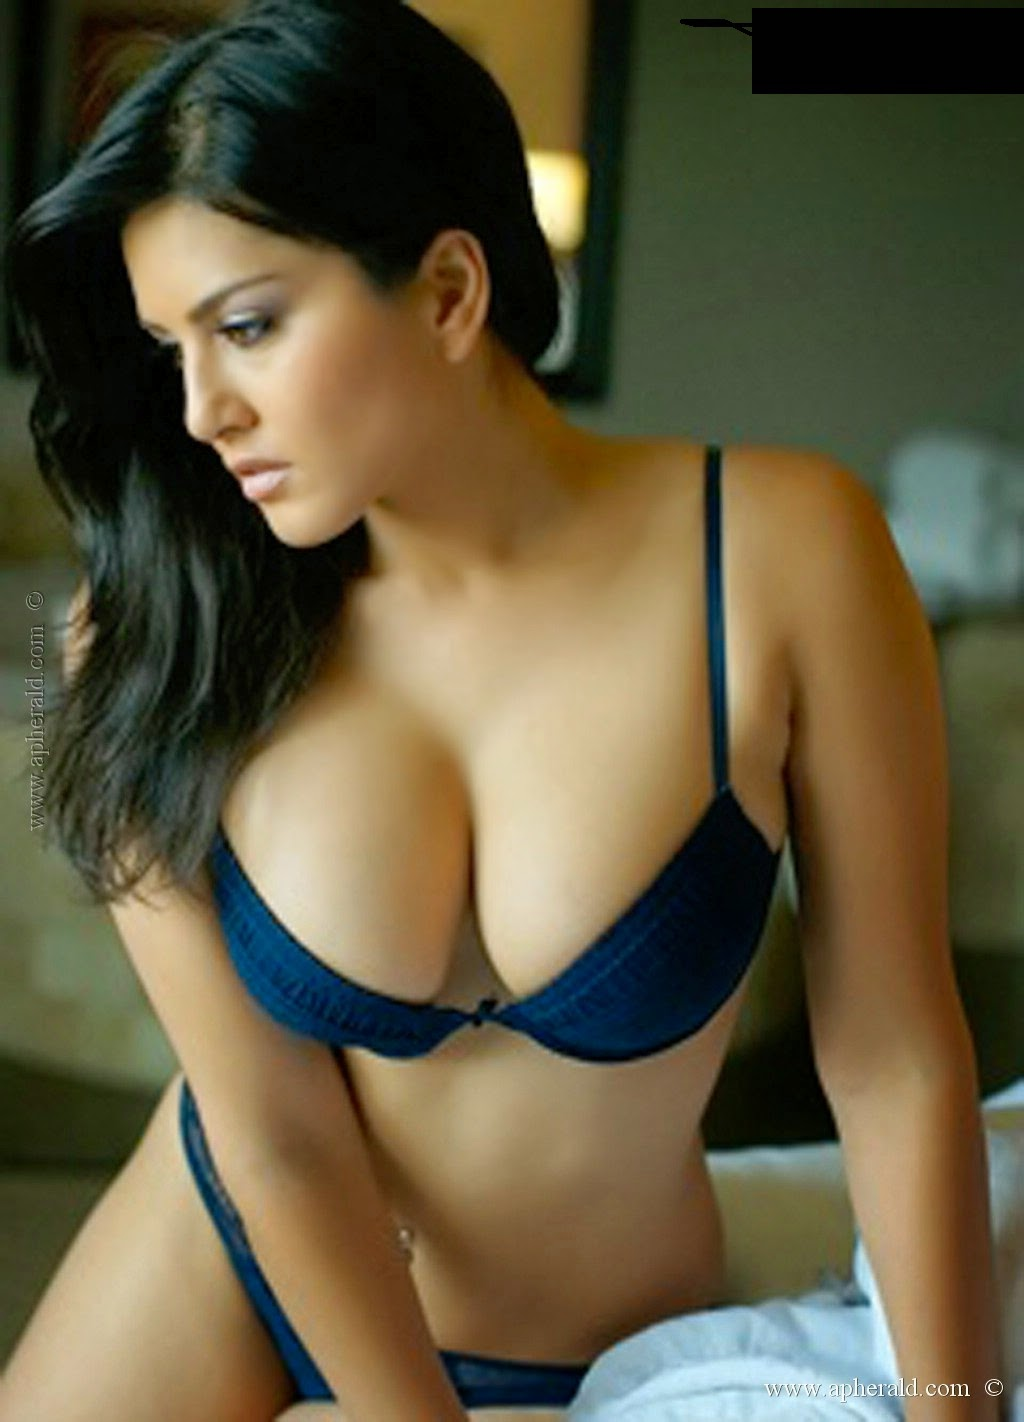 Suggest Sunny leone hot sexy pictures remarkable, very